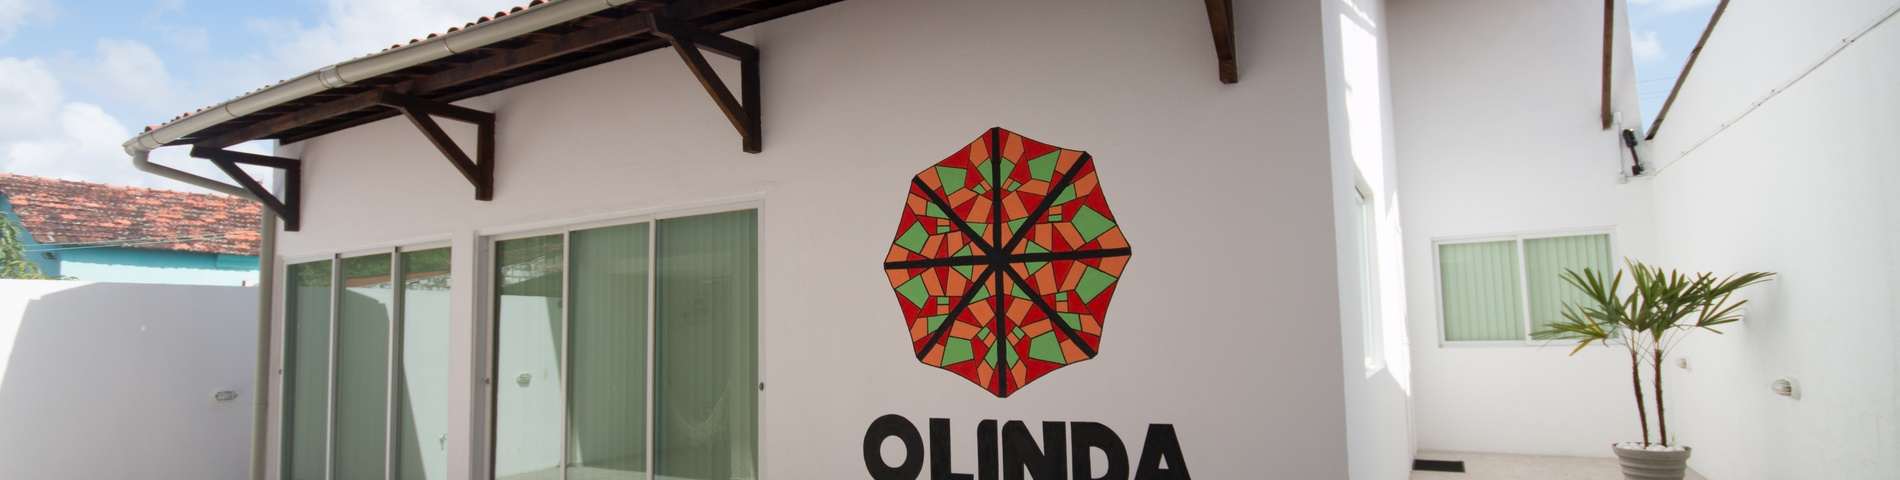 Olinda Portuguese Language School photo 28